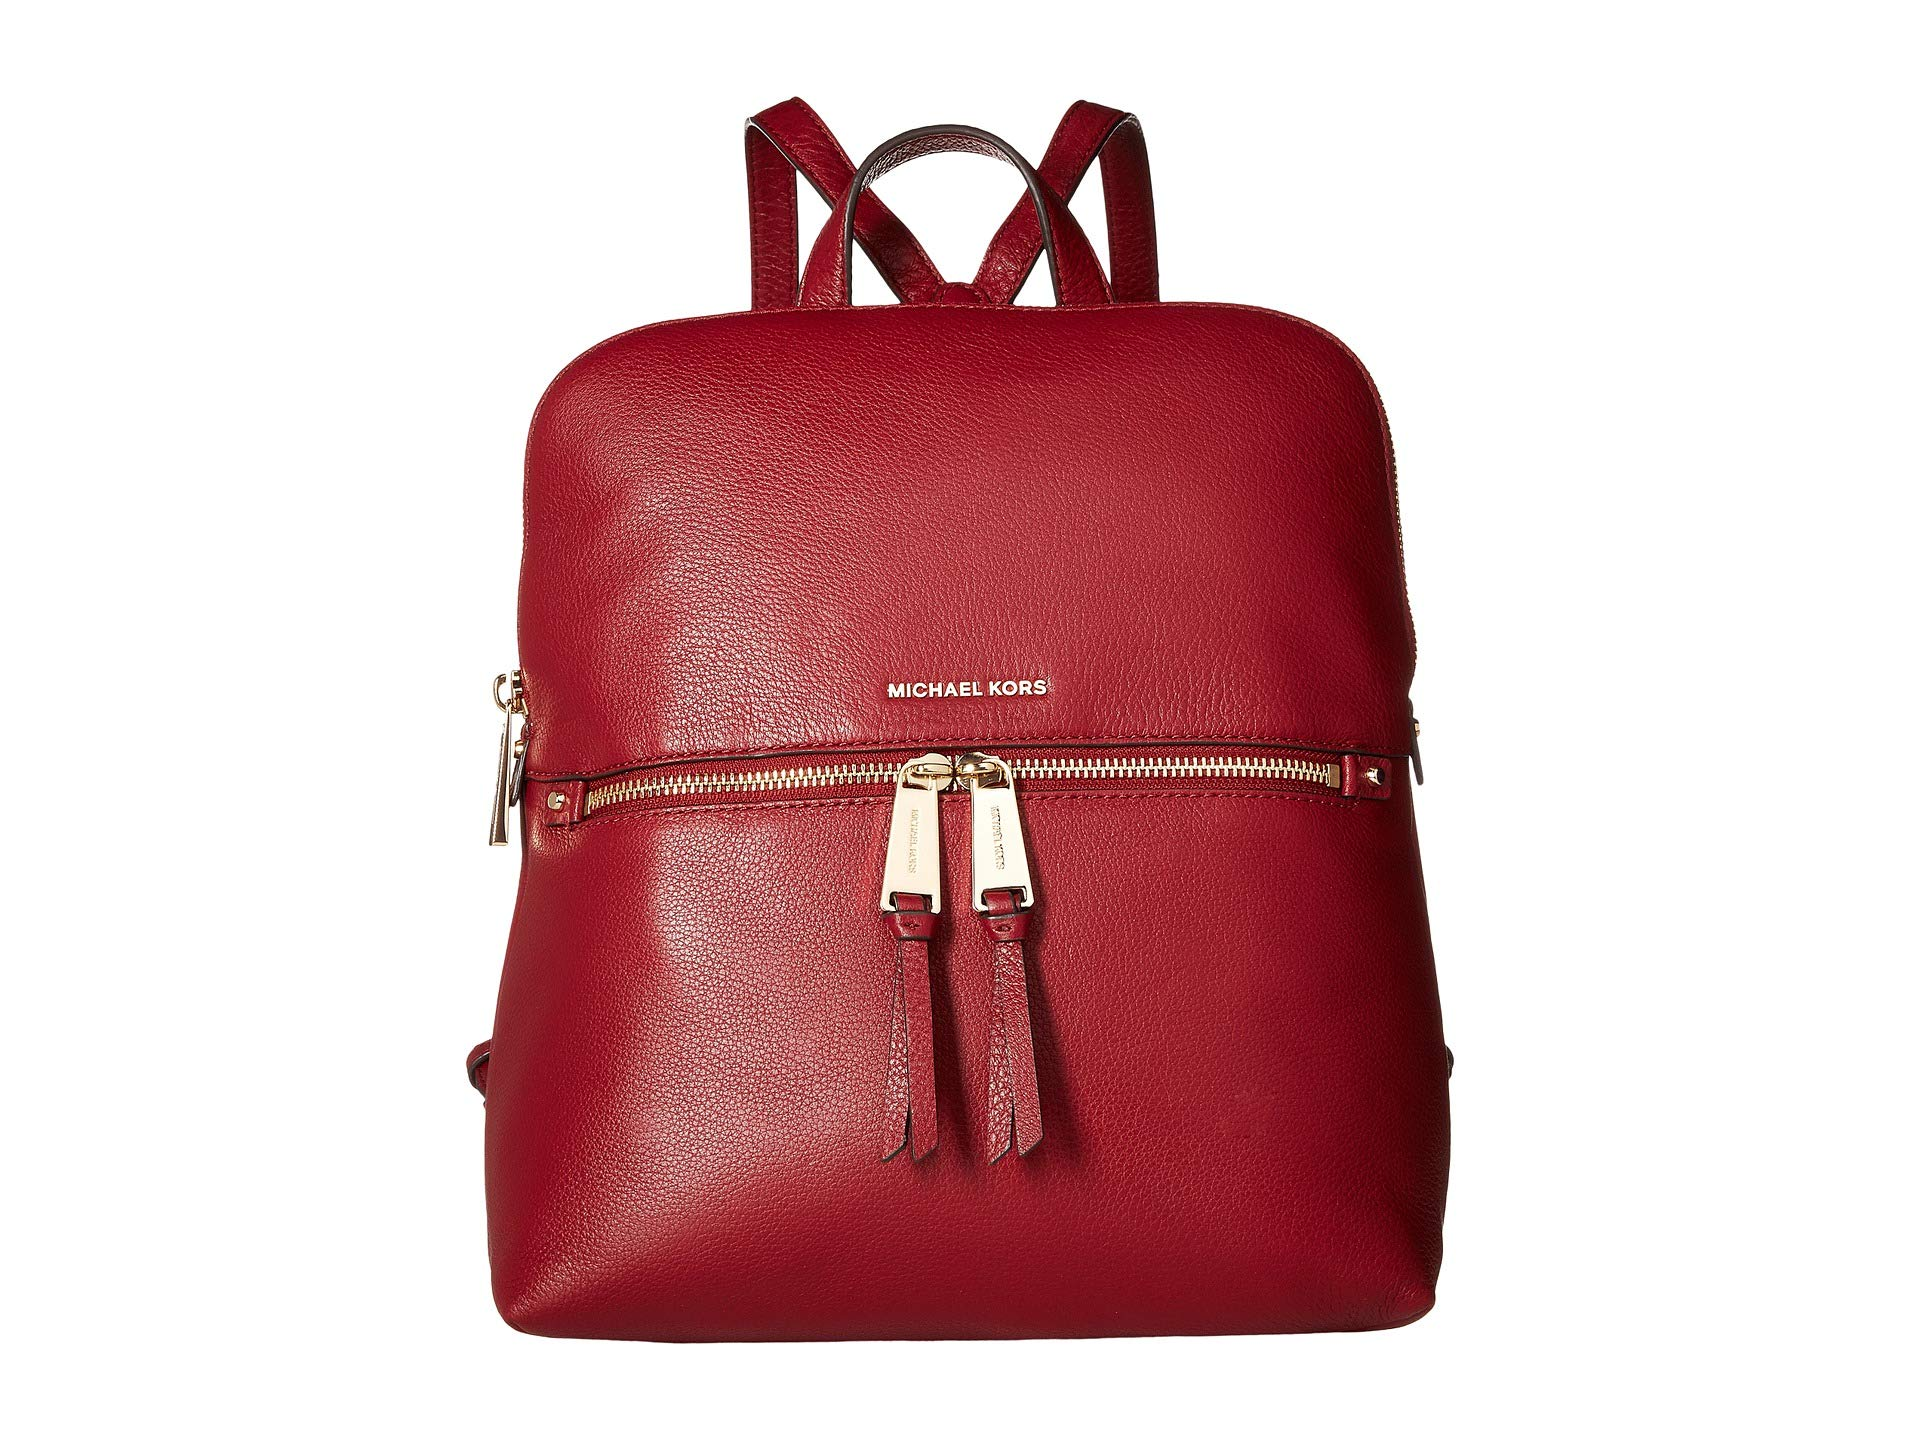 Michael Kors Rhea Medium Slim Leather Backpack MAROON by Michael Kors